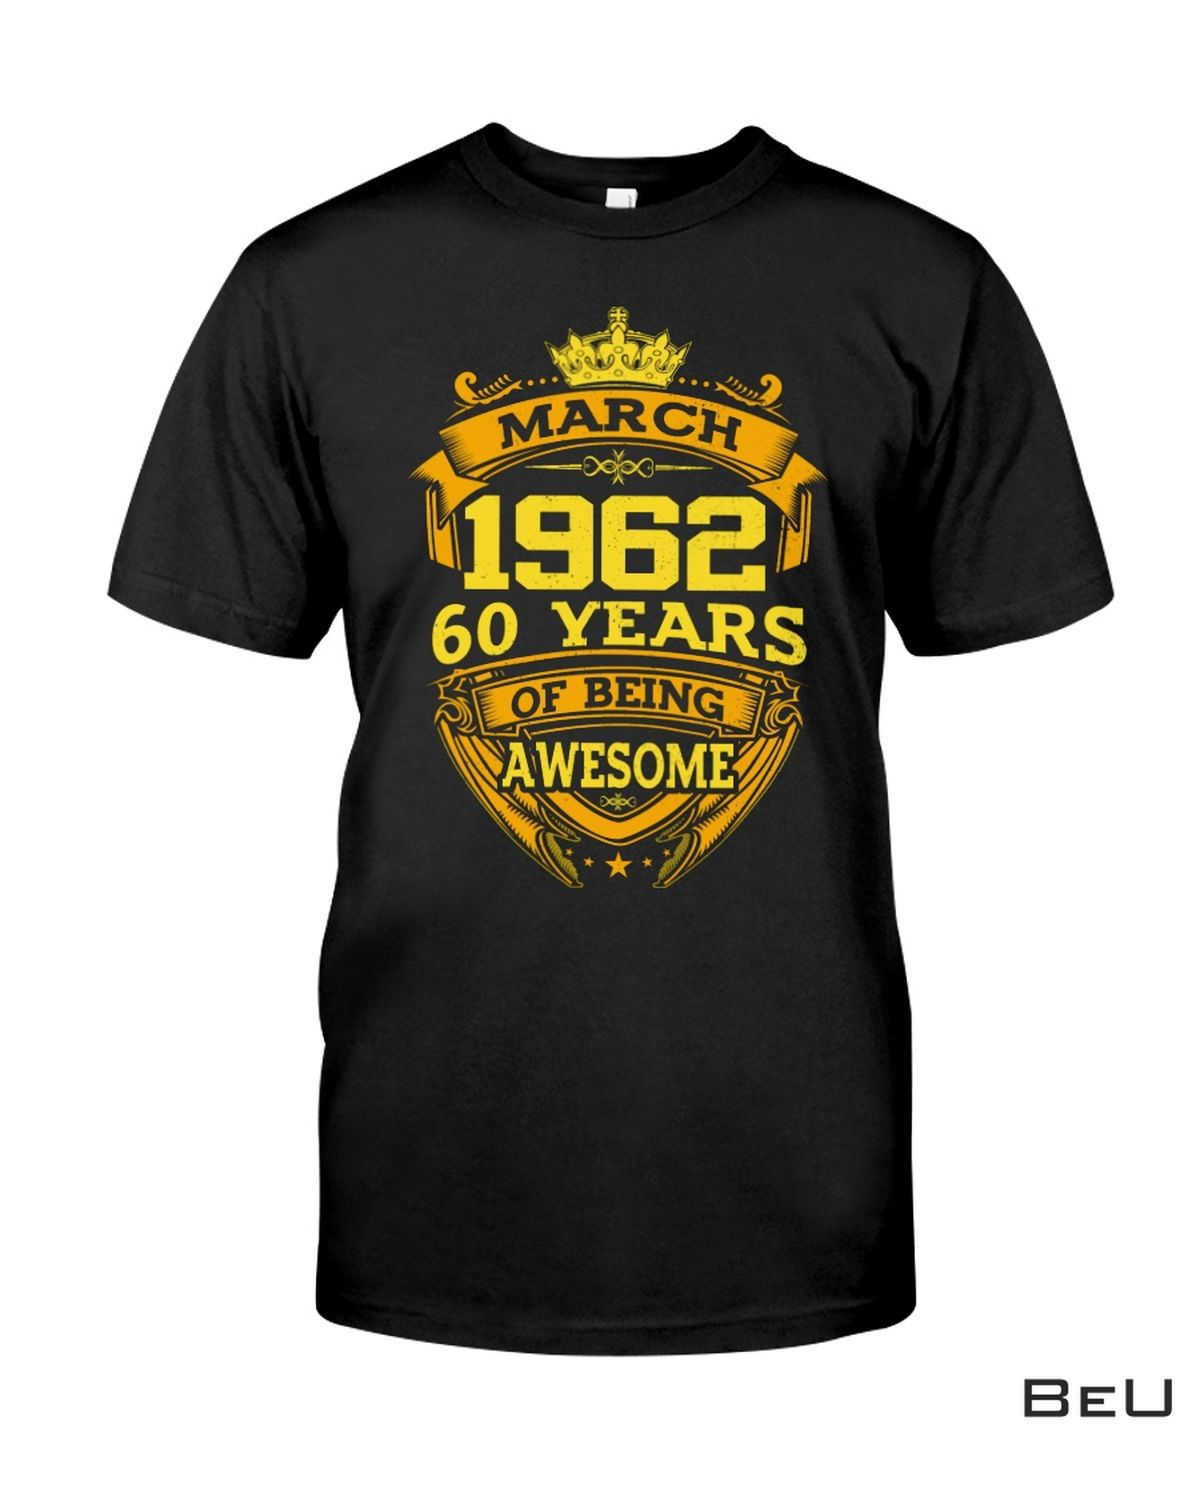 March 1962 60 Years Of Being Awesome Shirt